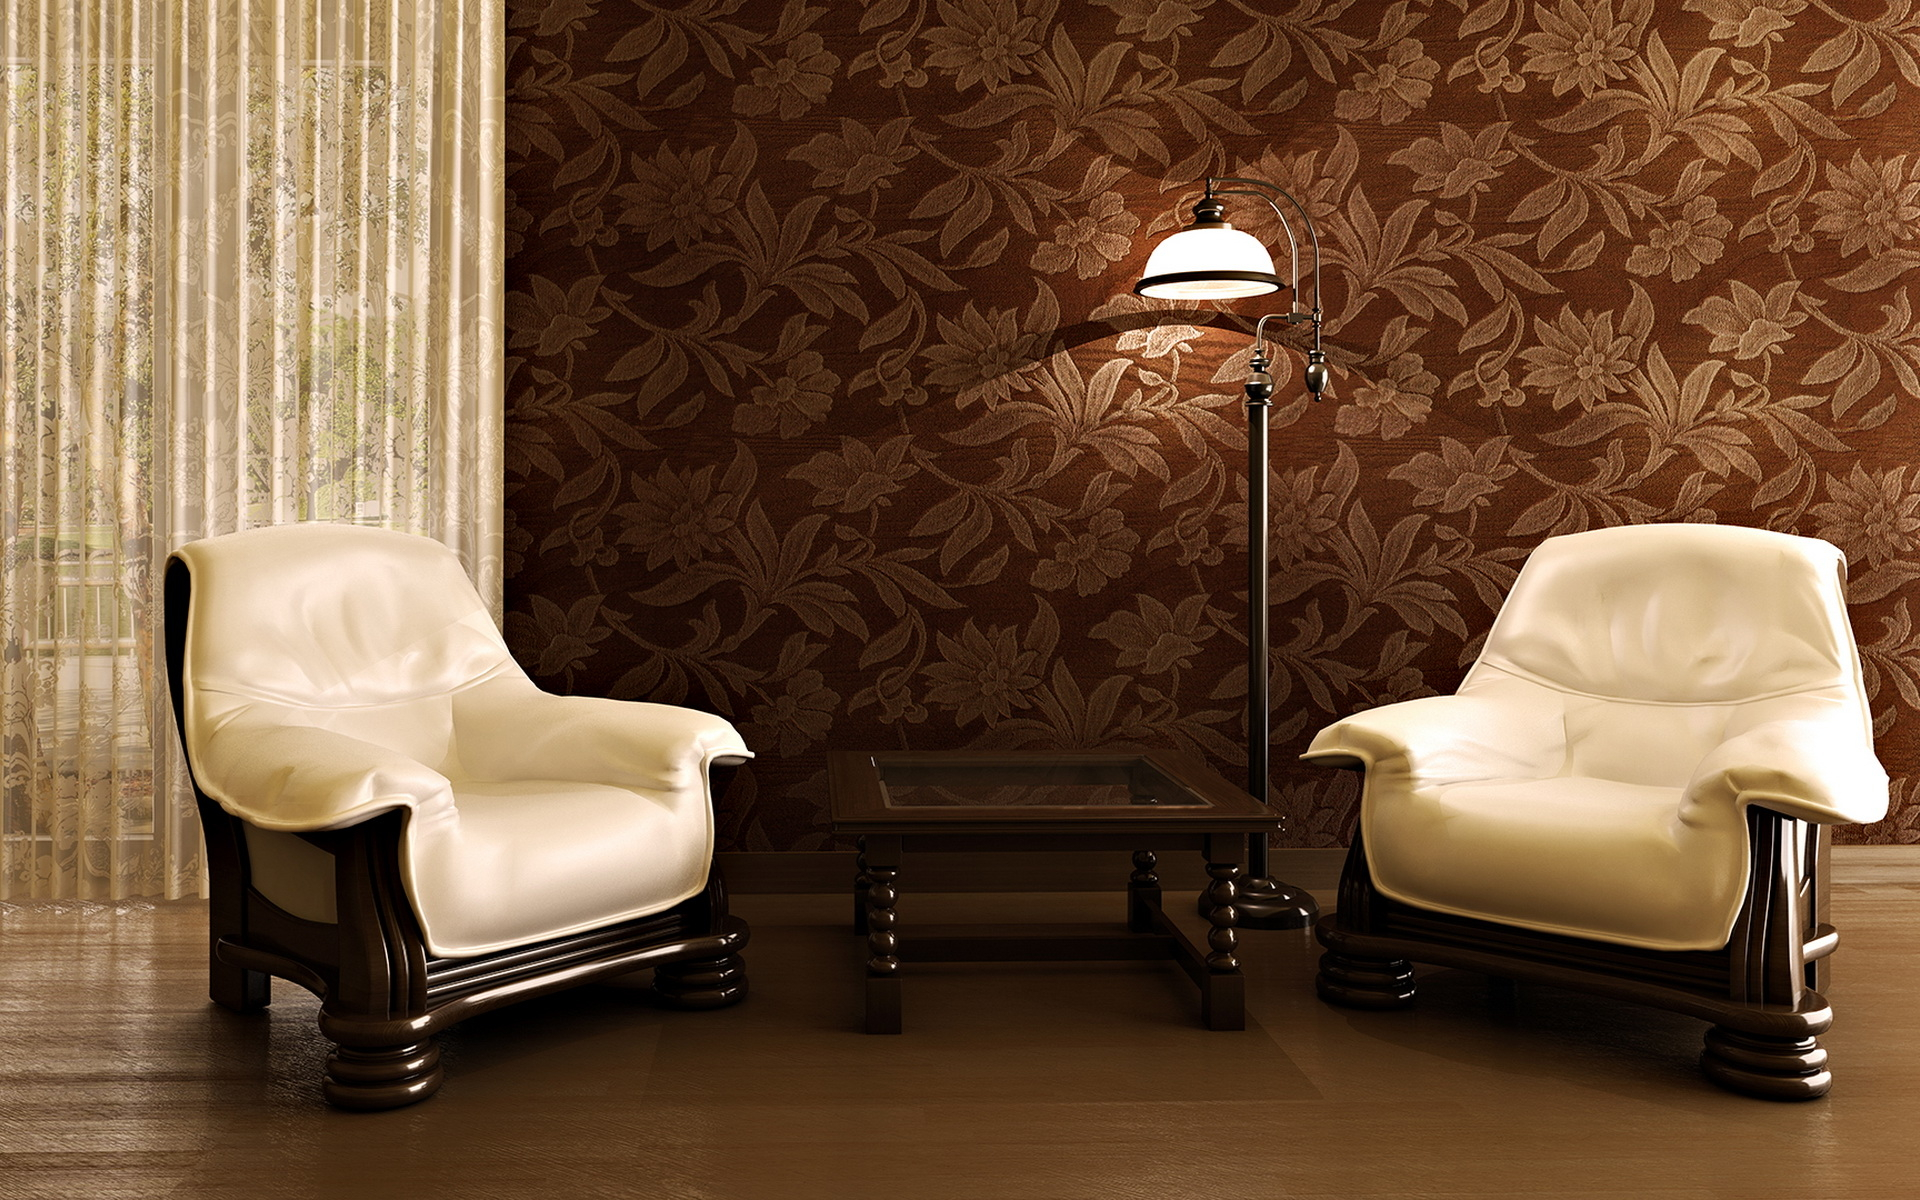 Wallpapers for living room design ideas in uk for Ideas for my living room